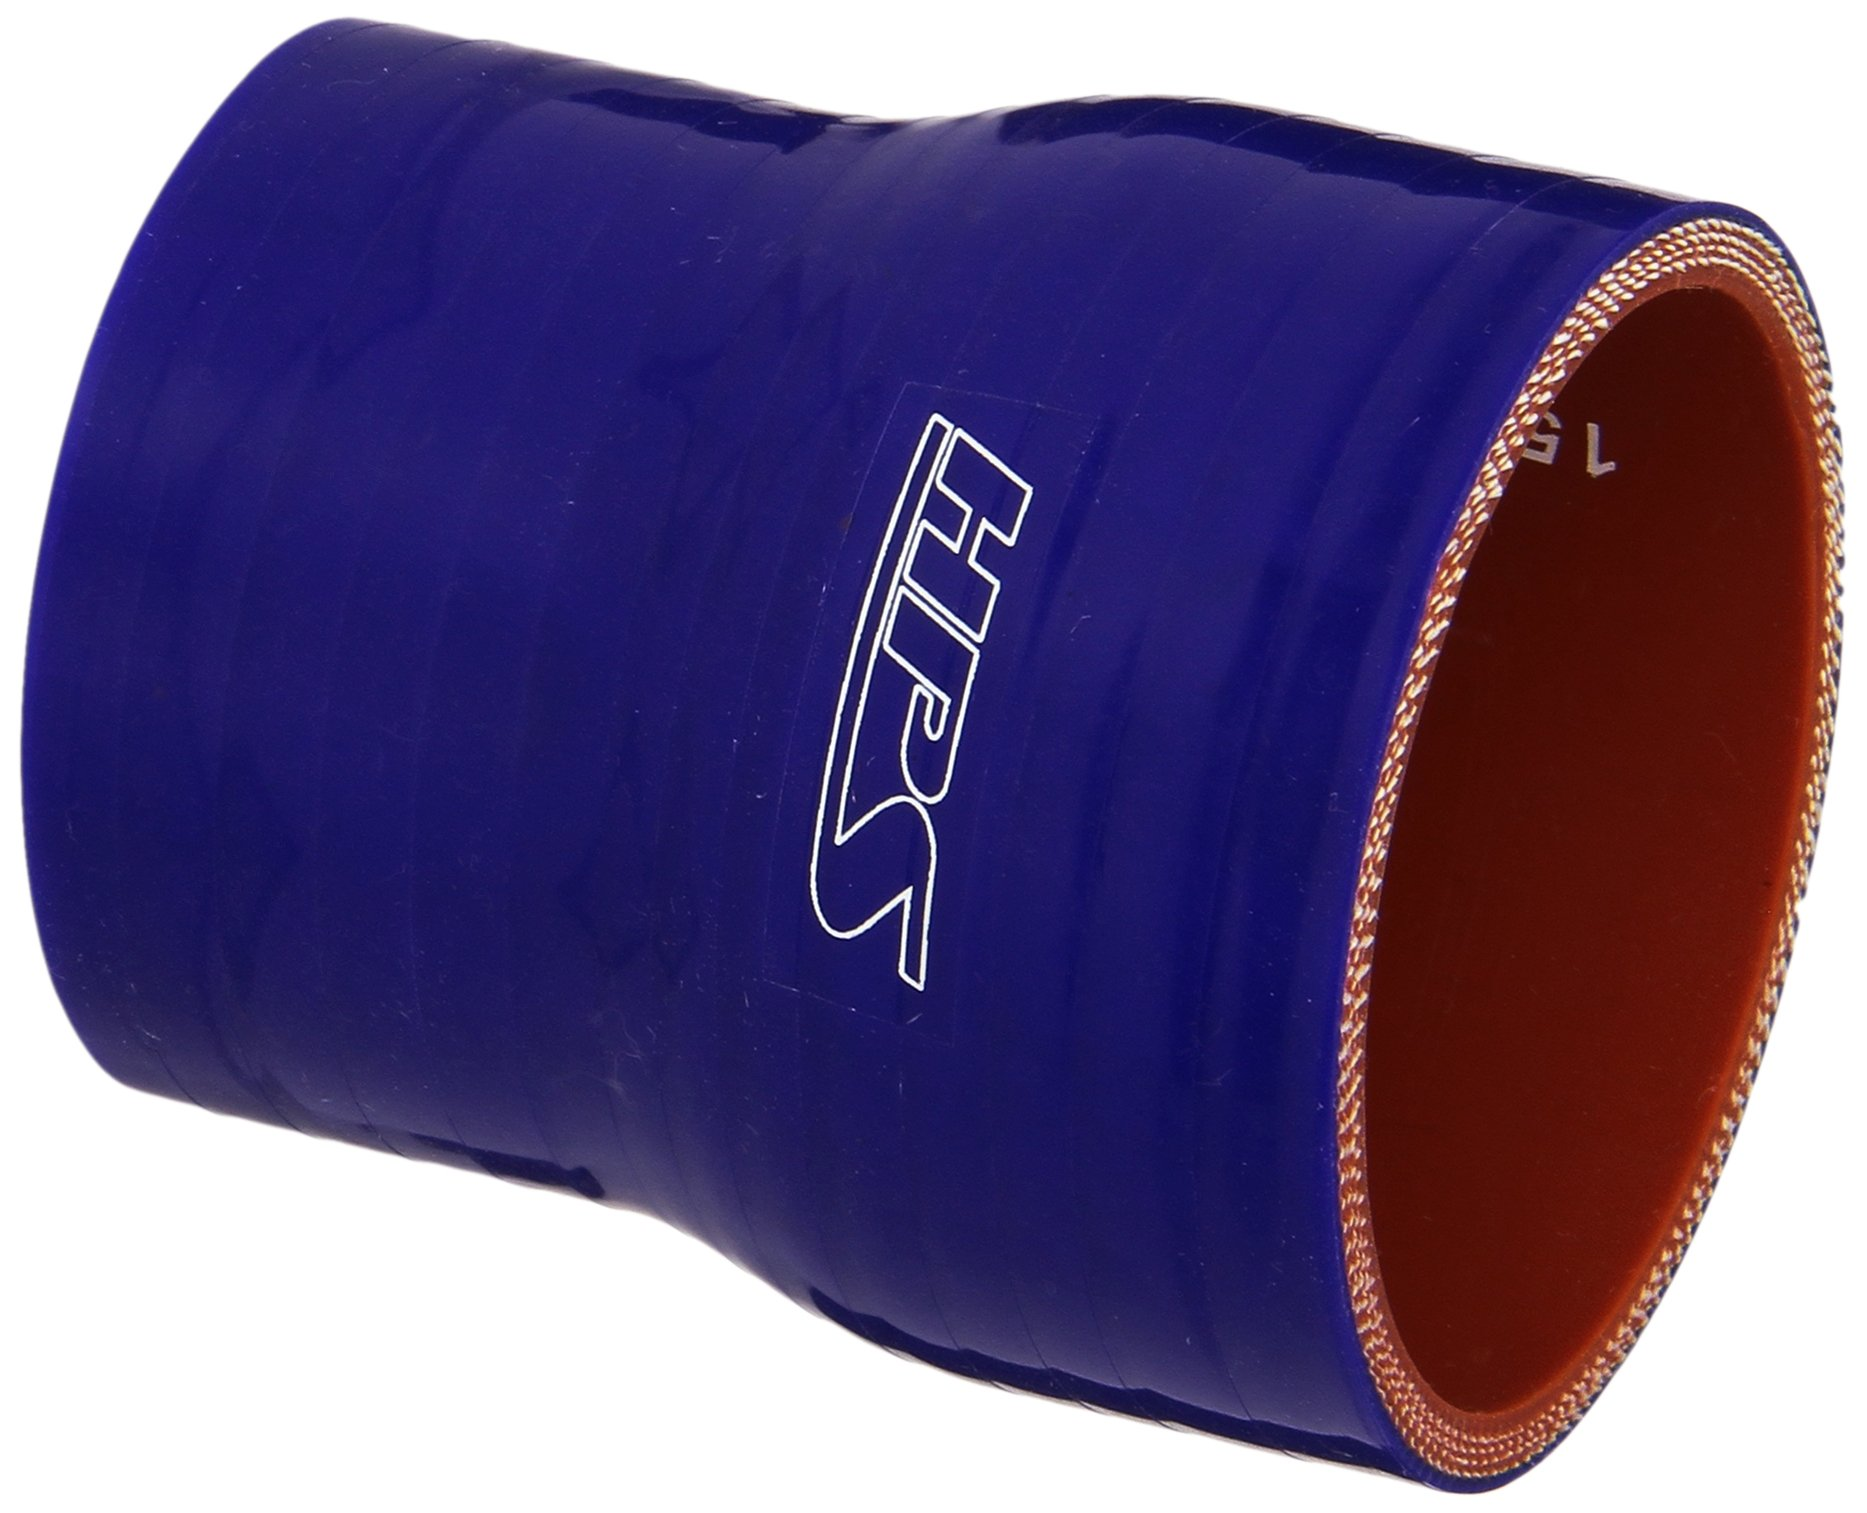 HPS HTSR-200-238-BLUE Silicone High Temperature 4-ply Reinforced Reducer Coupler Hose, 80 PSI Maximum Pressure, 3'' Length, 2'' > 2-3/8 ID, Blue